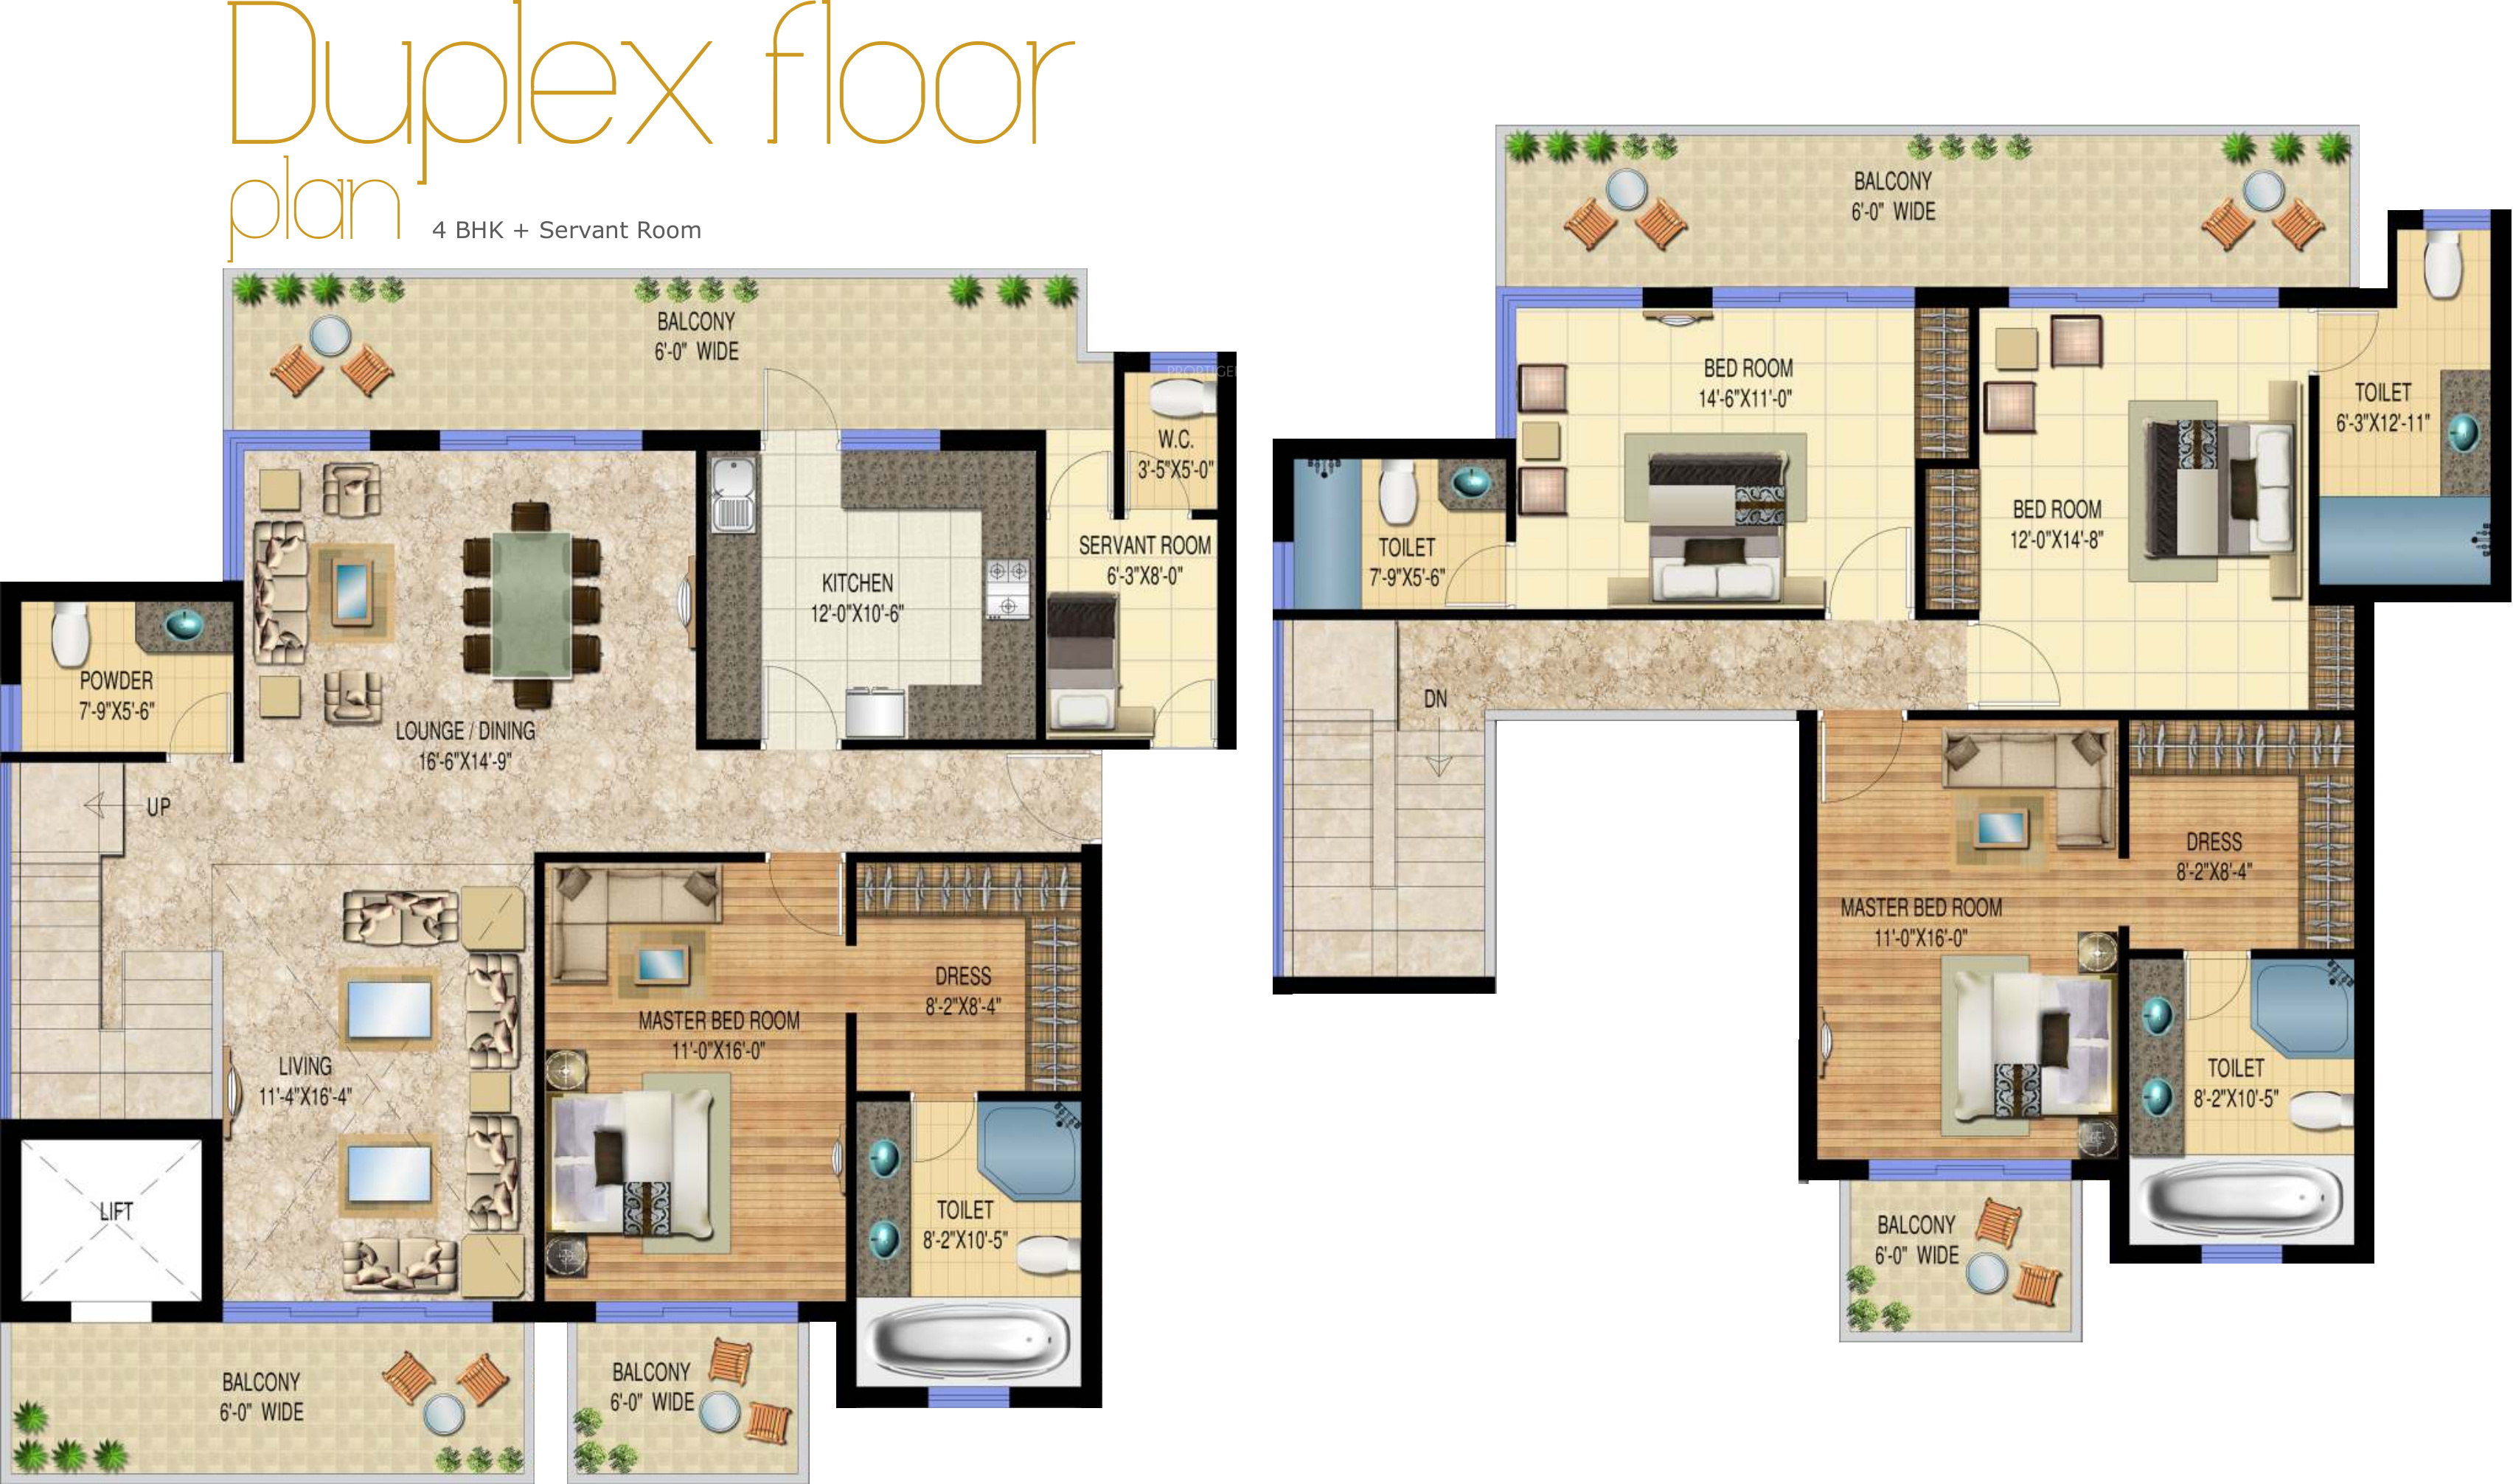 5 bhk duplex floor plan thefloors co. Black Bedroom Furniture Sets. Home Design Ideas